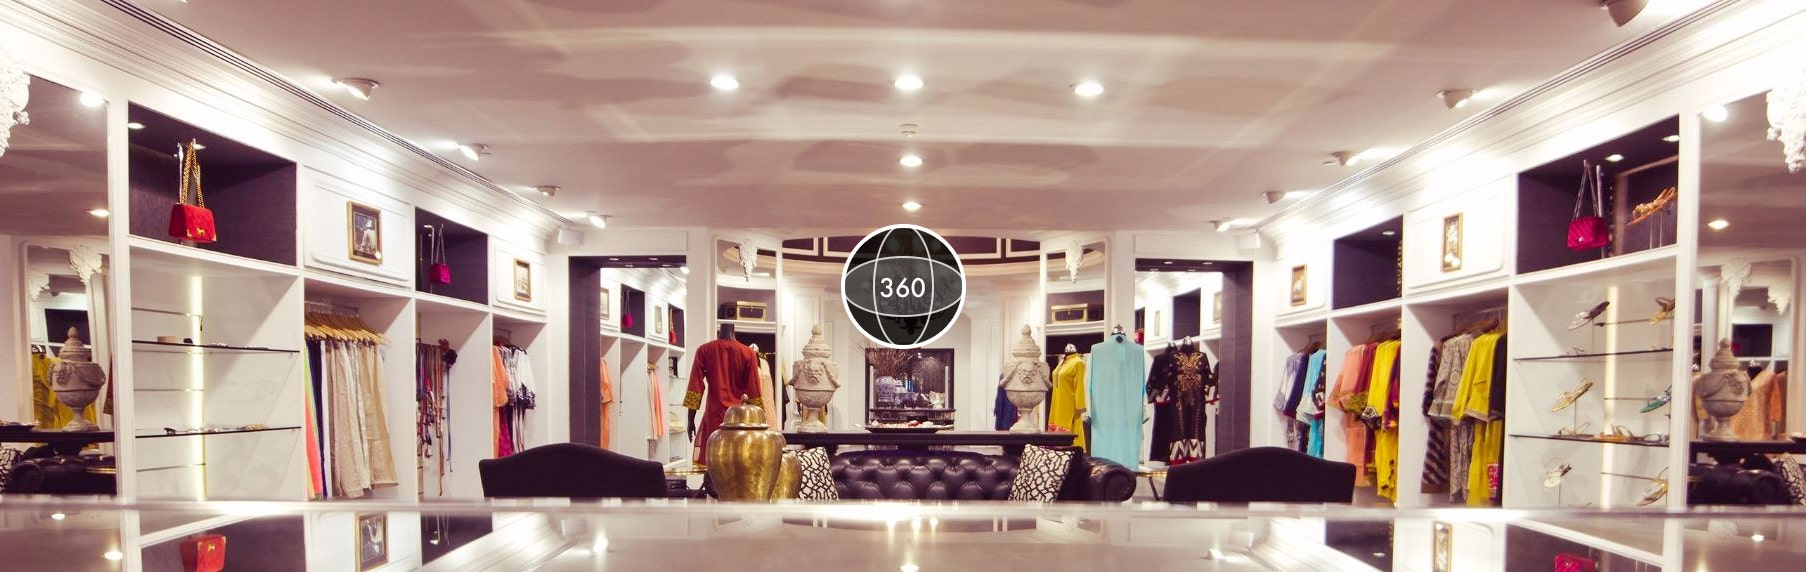 ee562ca63a Find a Sana Safinaz Store Near You